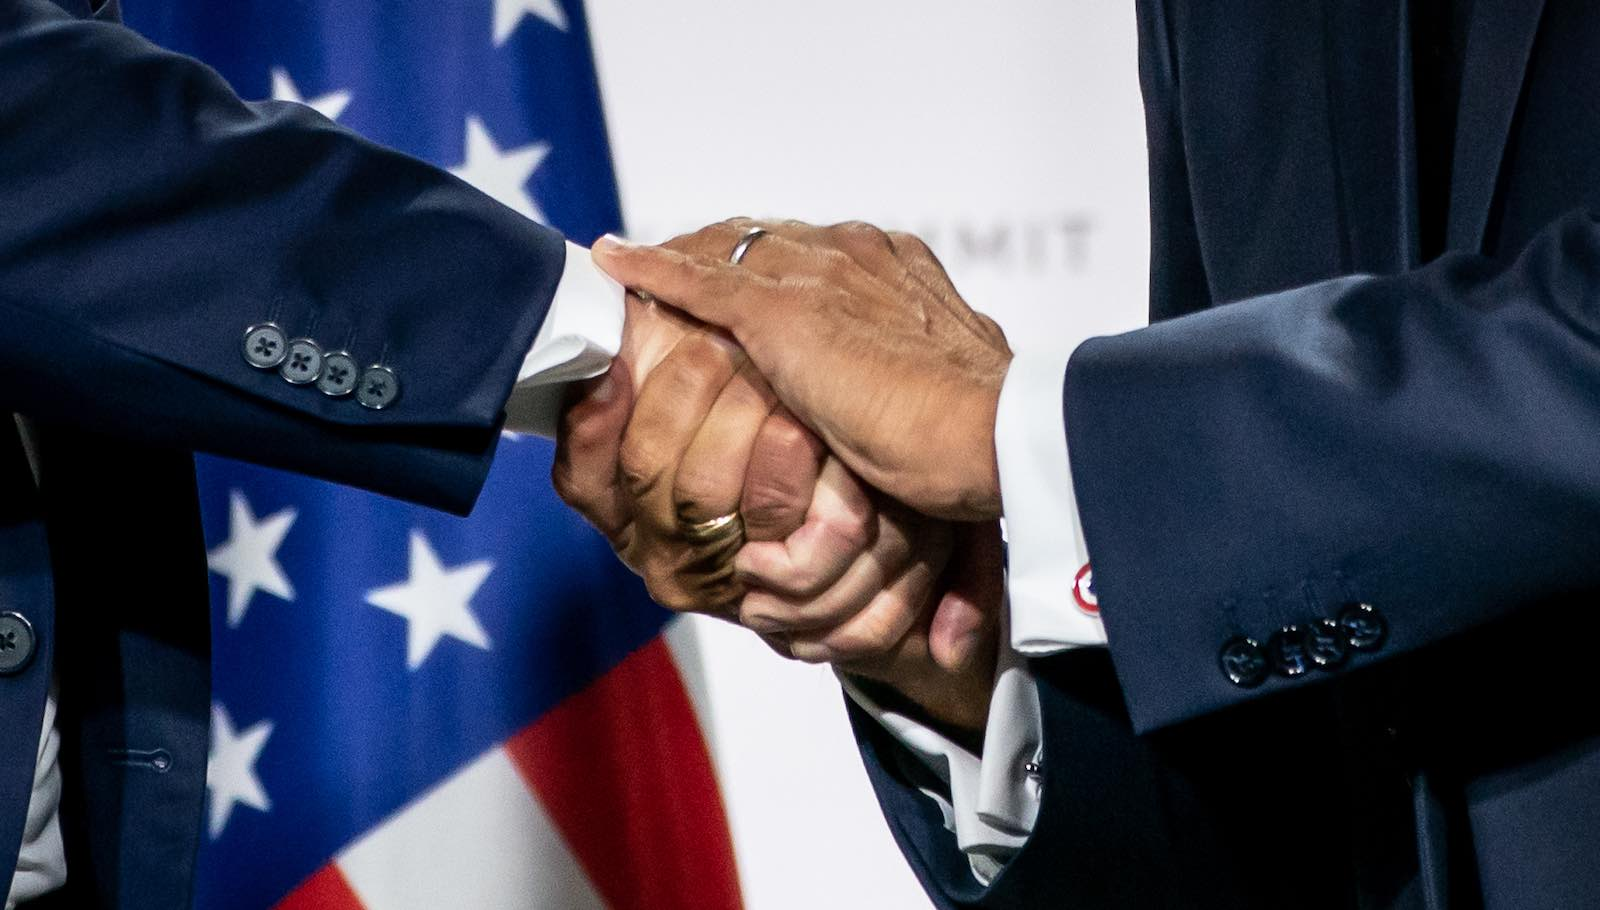 US President Trump and French President Emmanuel Macron shake hands at the final press conference of the G7 Summit, Biarritz, France, 26 August 2019 (Photo: Michael Kappeler via Getty)